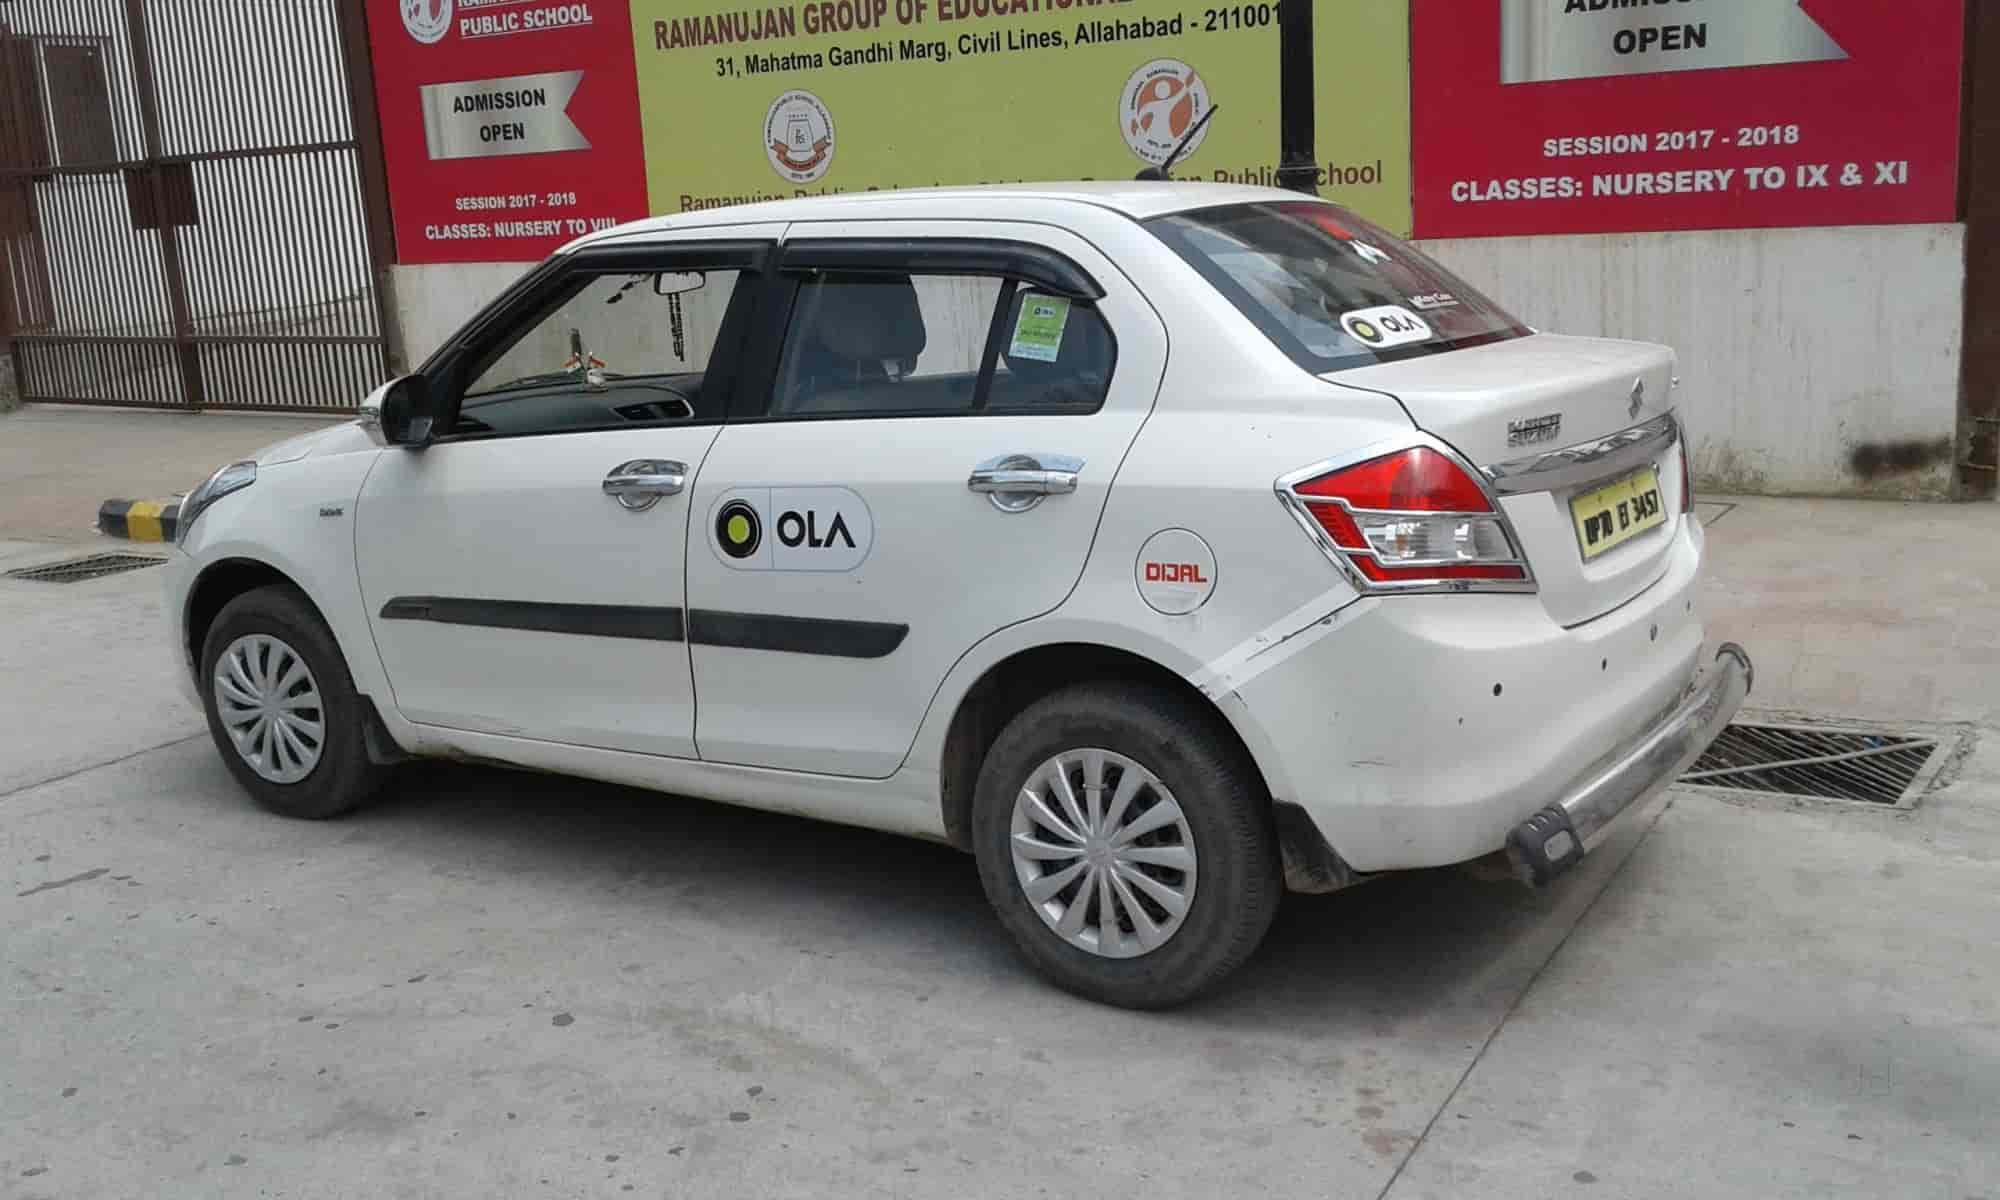 Ola Cabs Civil Lines Taxi Services In Allahabad Justdial